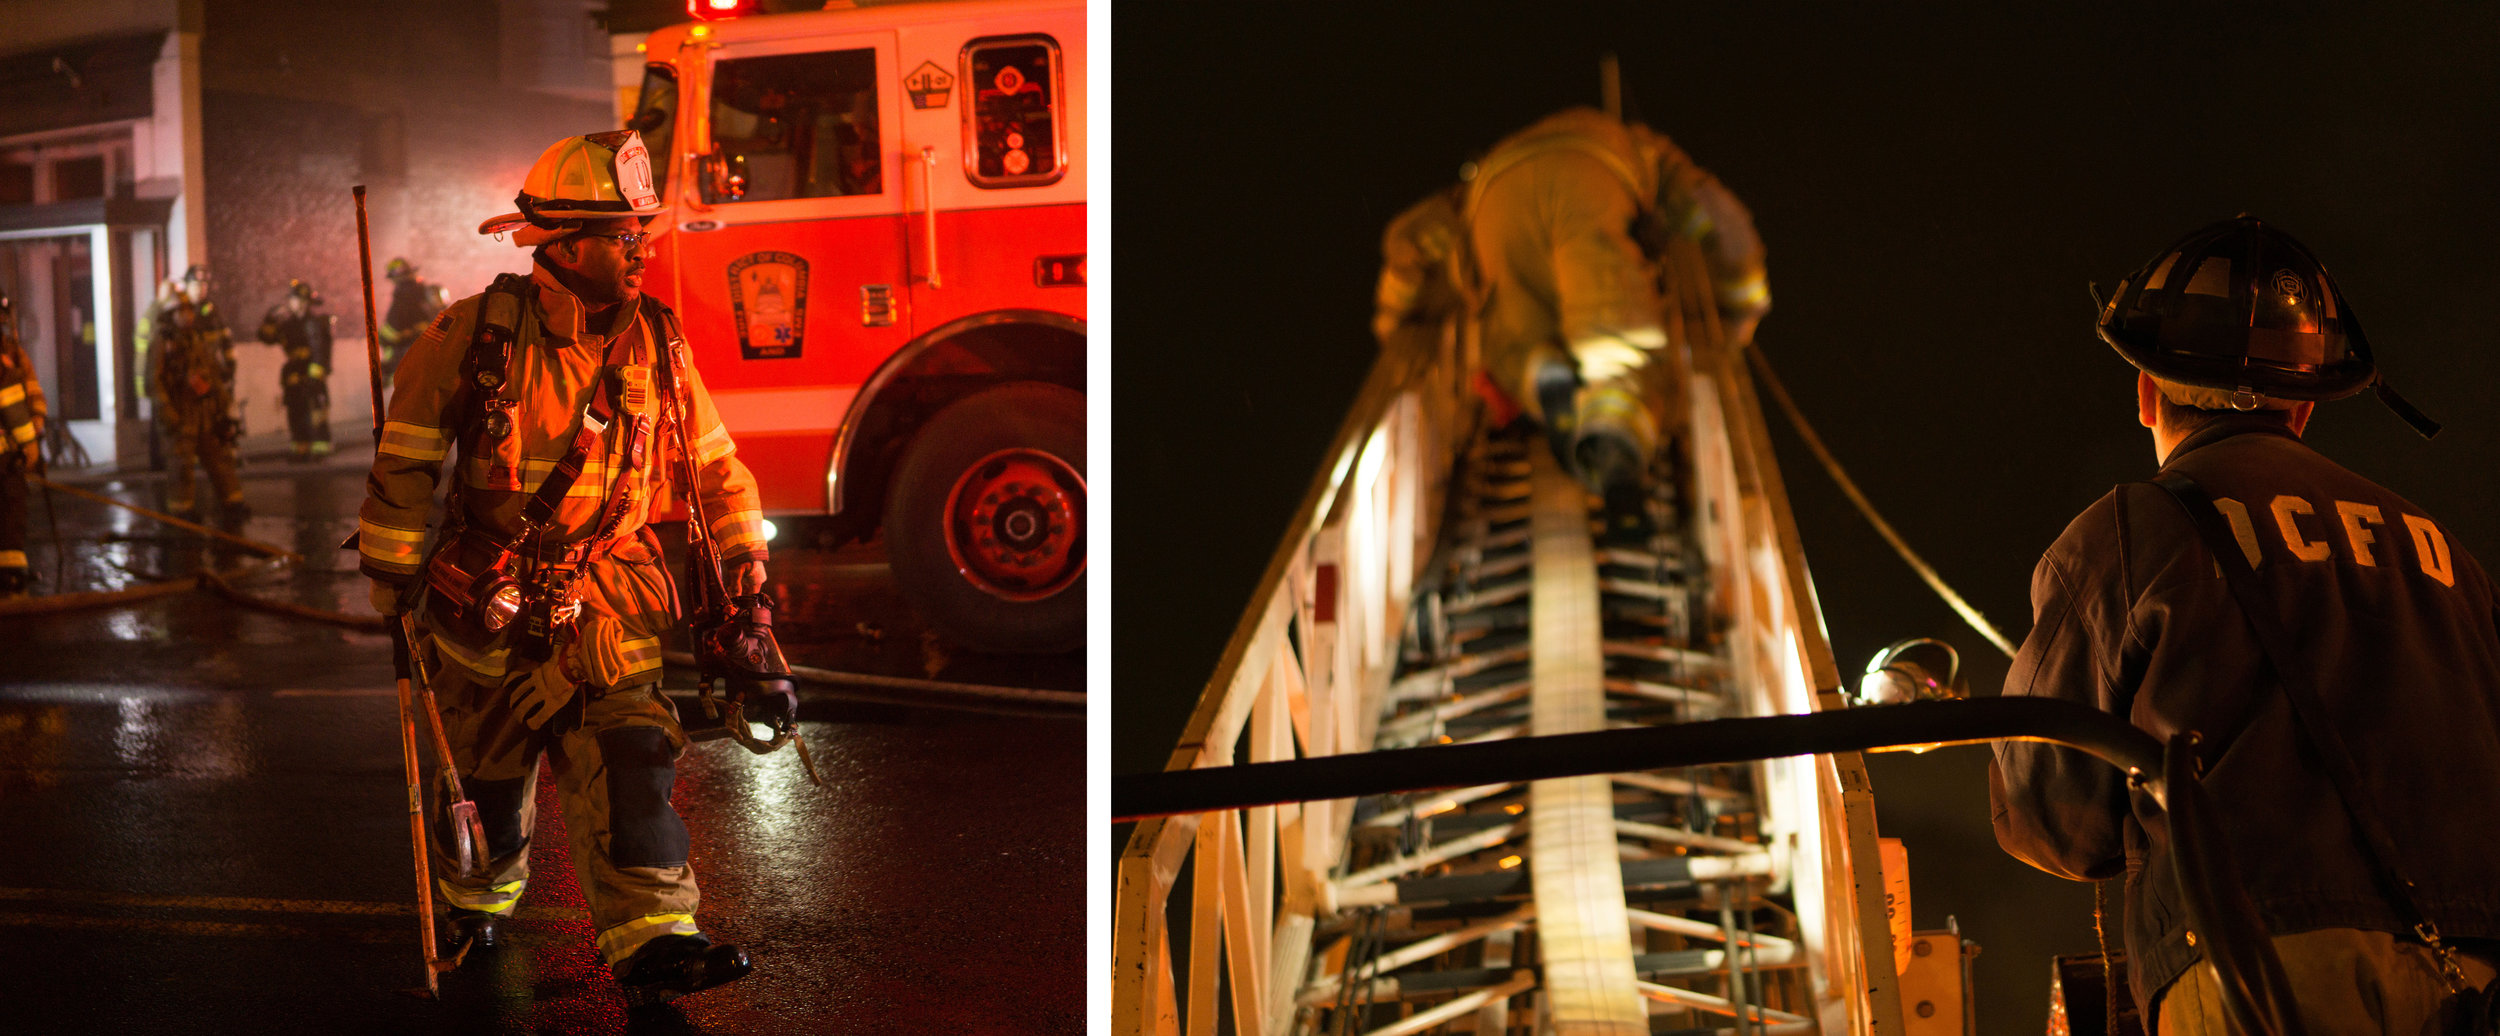 WASHINGTON D.C., December 22nd, 2017-- Captain Alston on the scene of the 18th Street Fire (left) while two Firefighters from an unknown Ladder work to re-position the hose dousing the remaining fire.  Photo by Taylor Mickal.